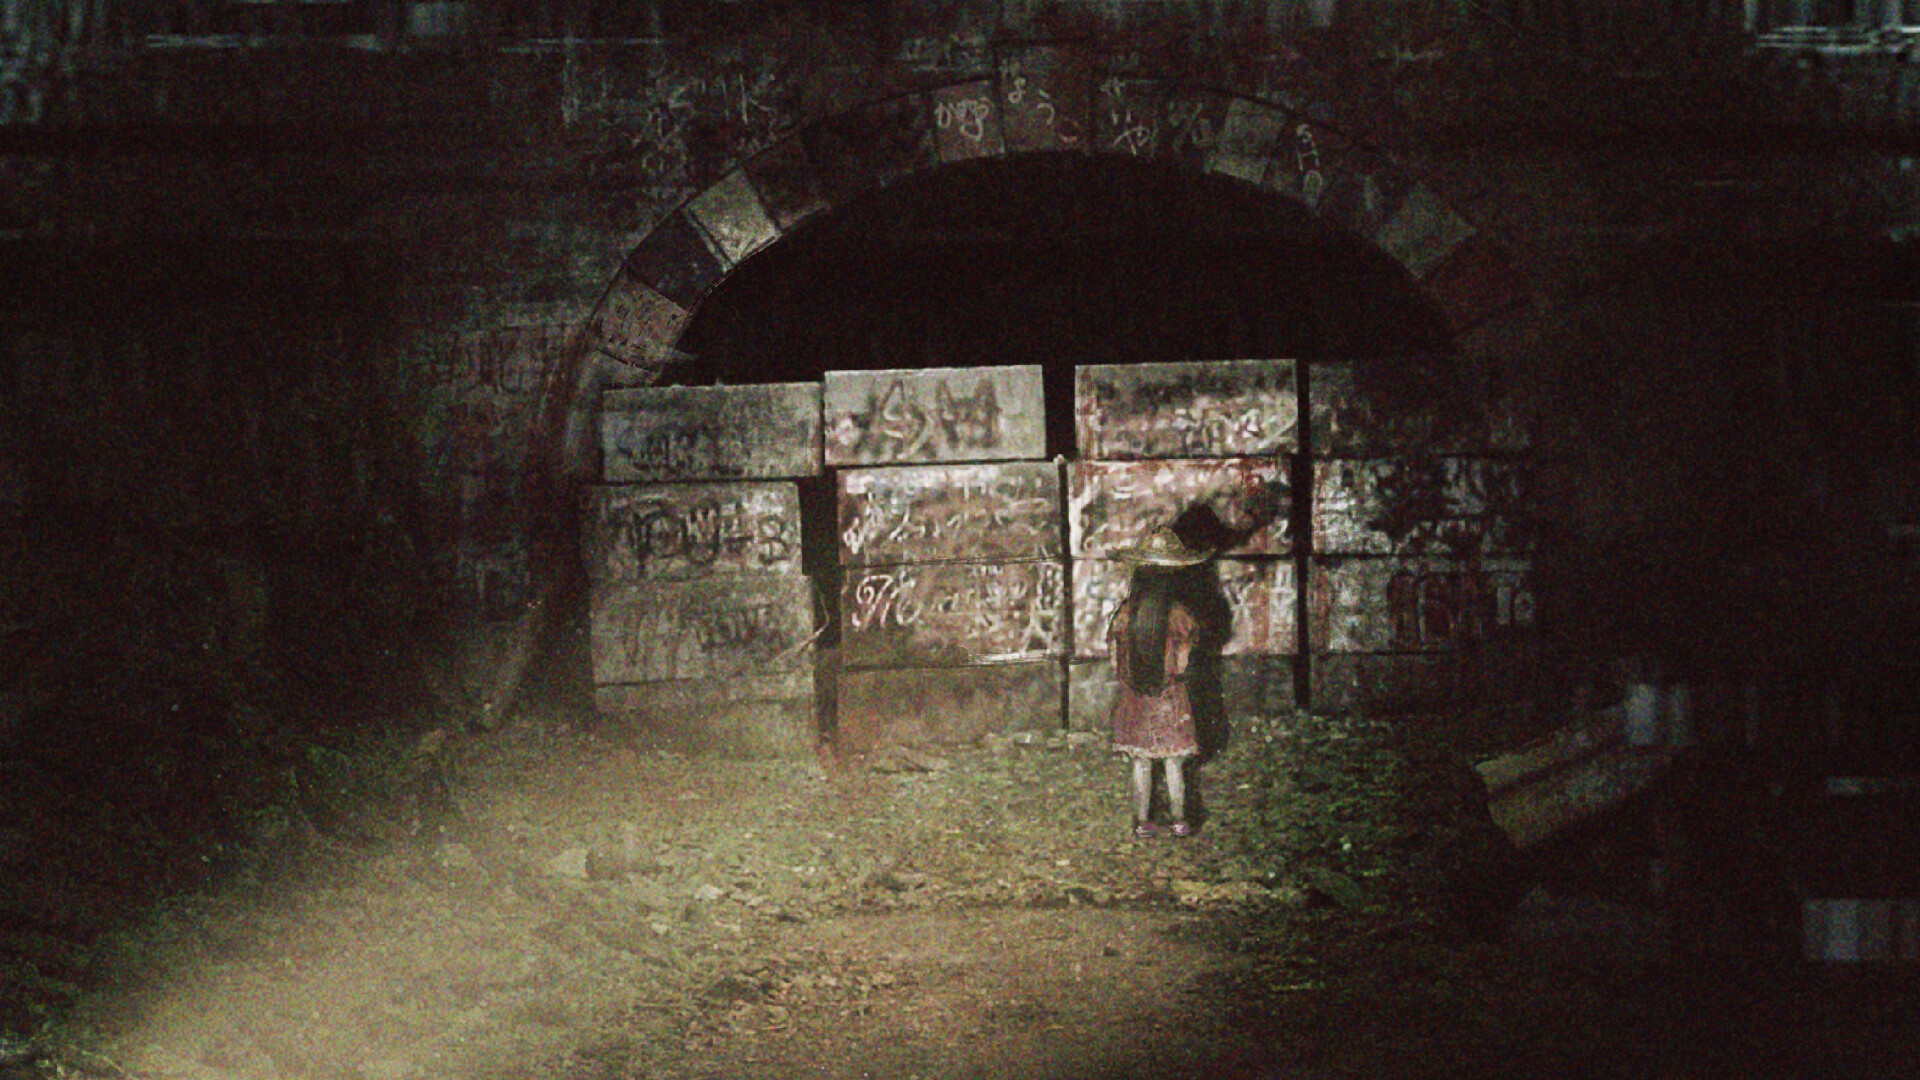 Ancient folklore has always been the bread and butter of the Fatal Frame series. But this game would also explore modern urban legends like the Inunaki tunnel.